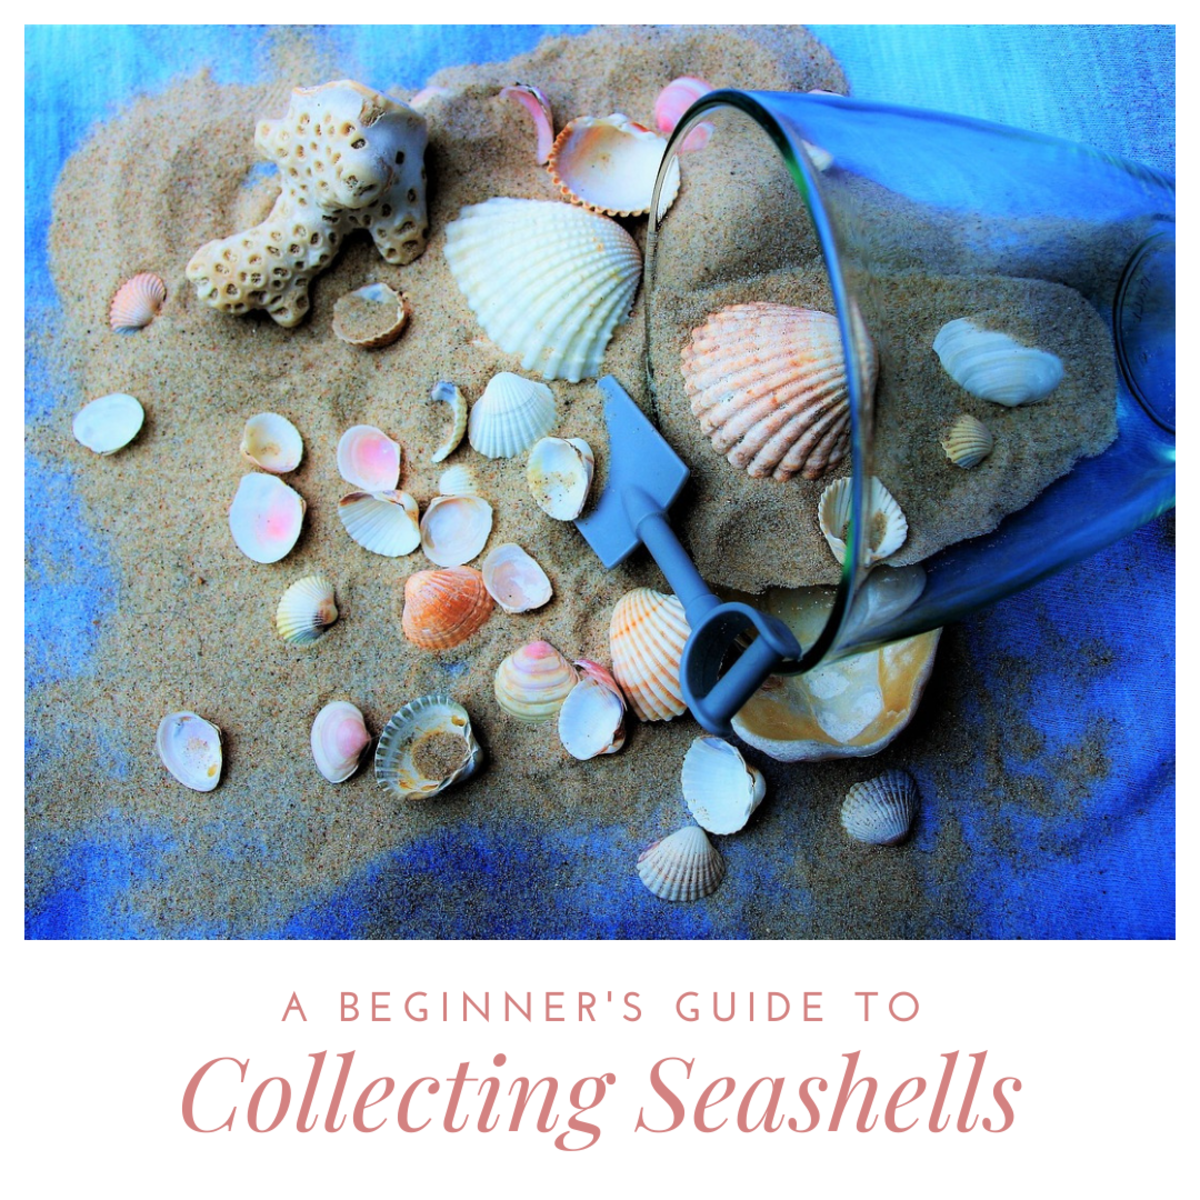 Looking to take up a new hobby? Collecting seashells just might be it!